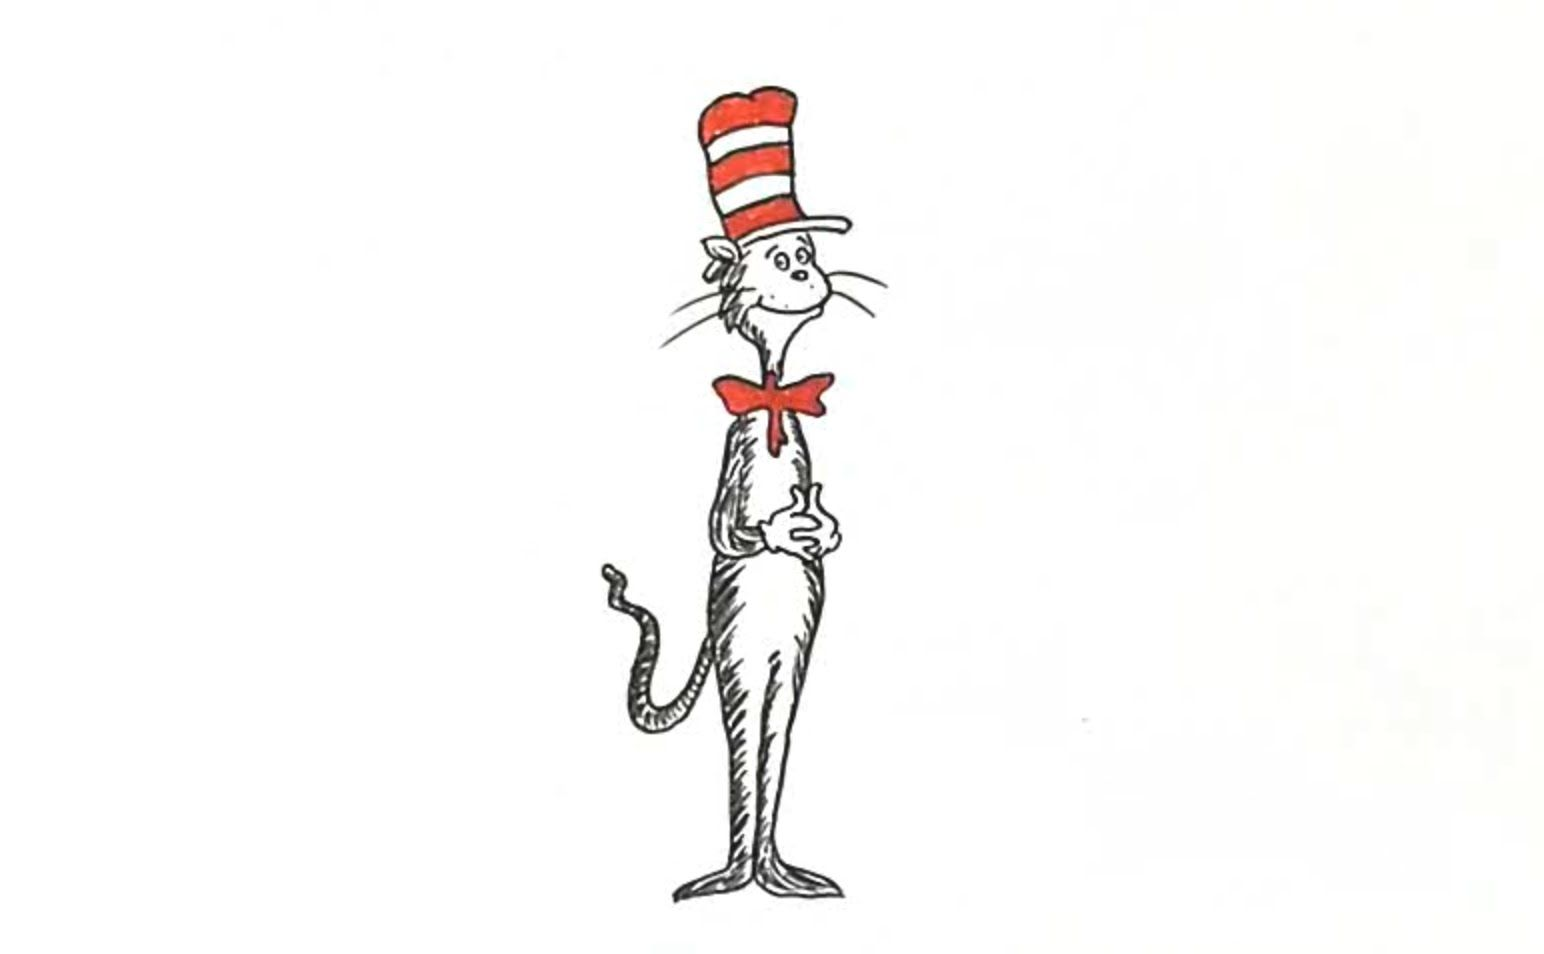 Learn How To Draw Dr Seuss The Cat In The Hat In This